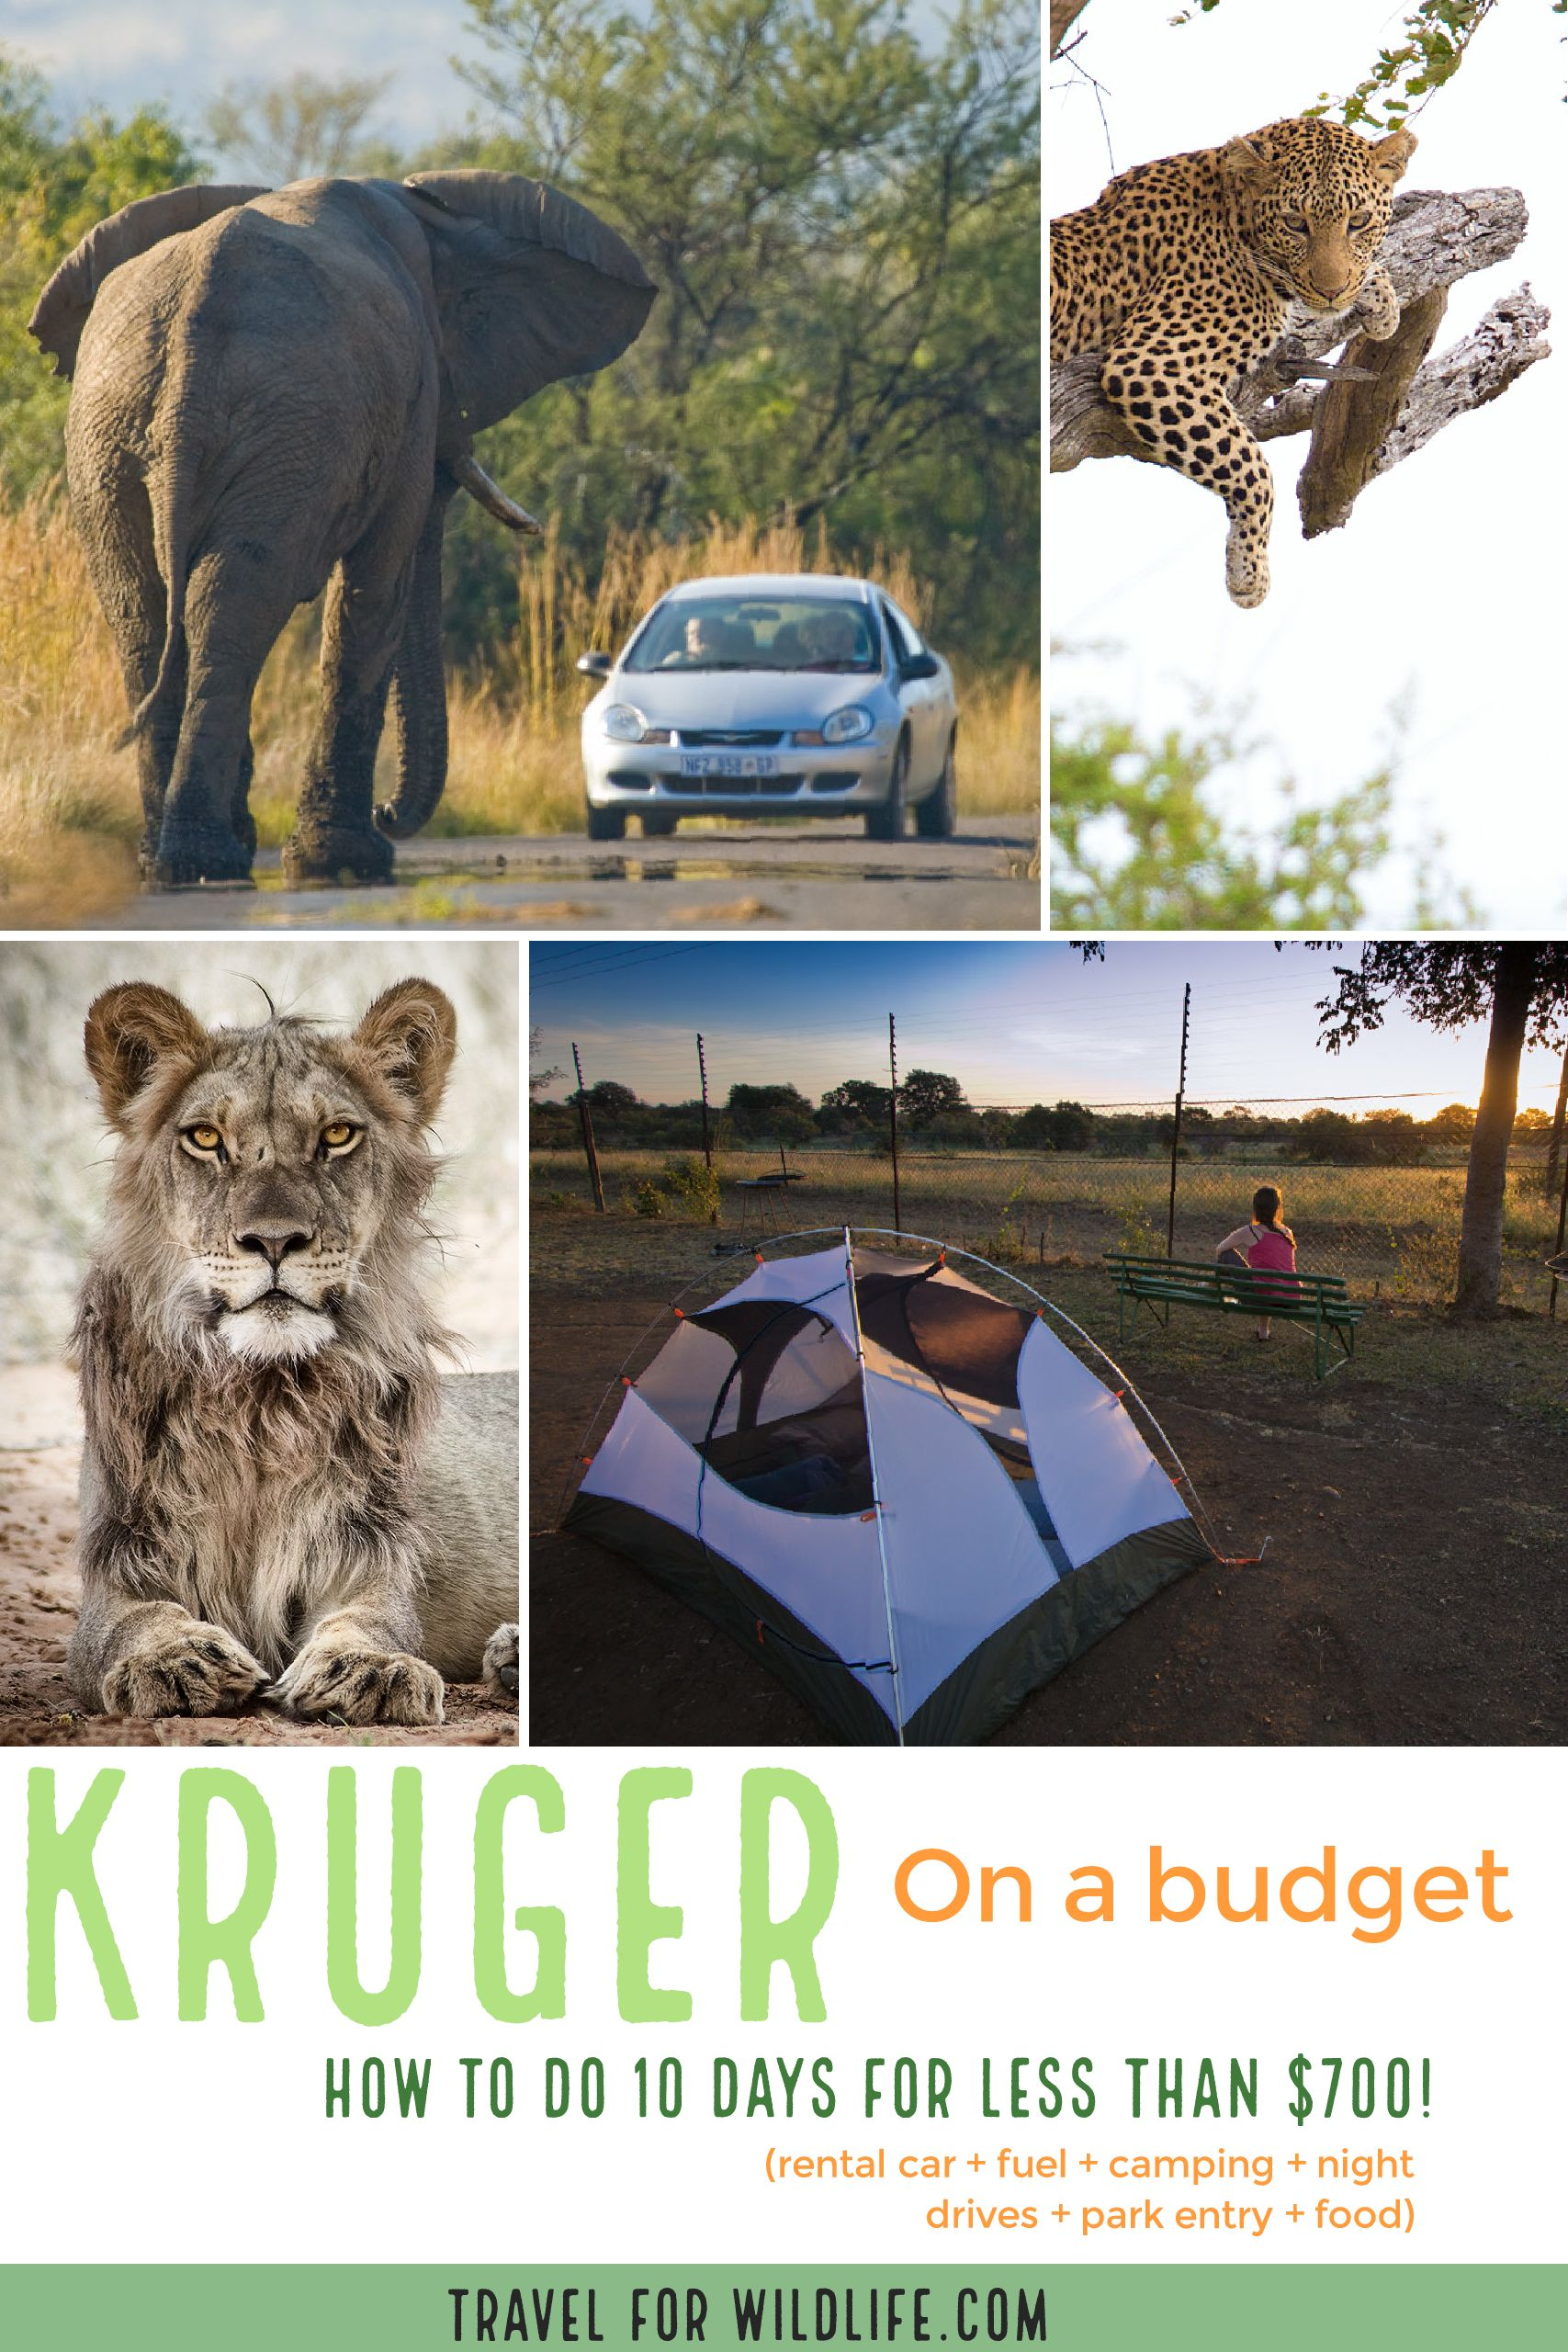 How to Go on an African Safari in Kruger (for less than $700